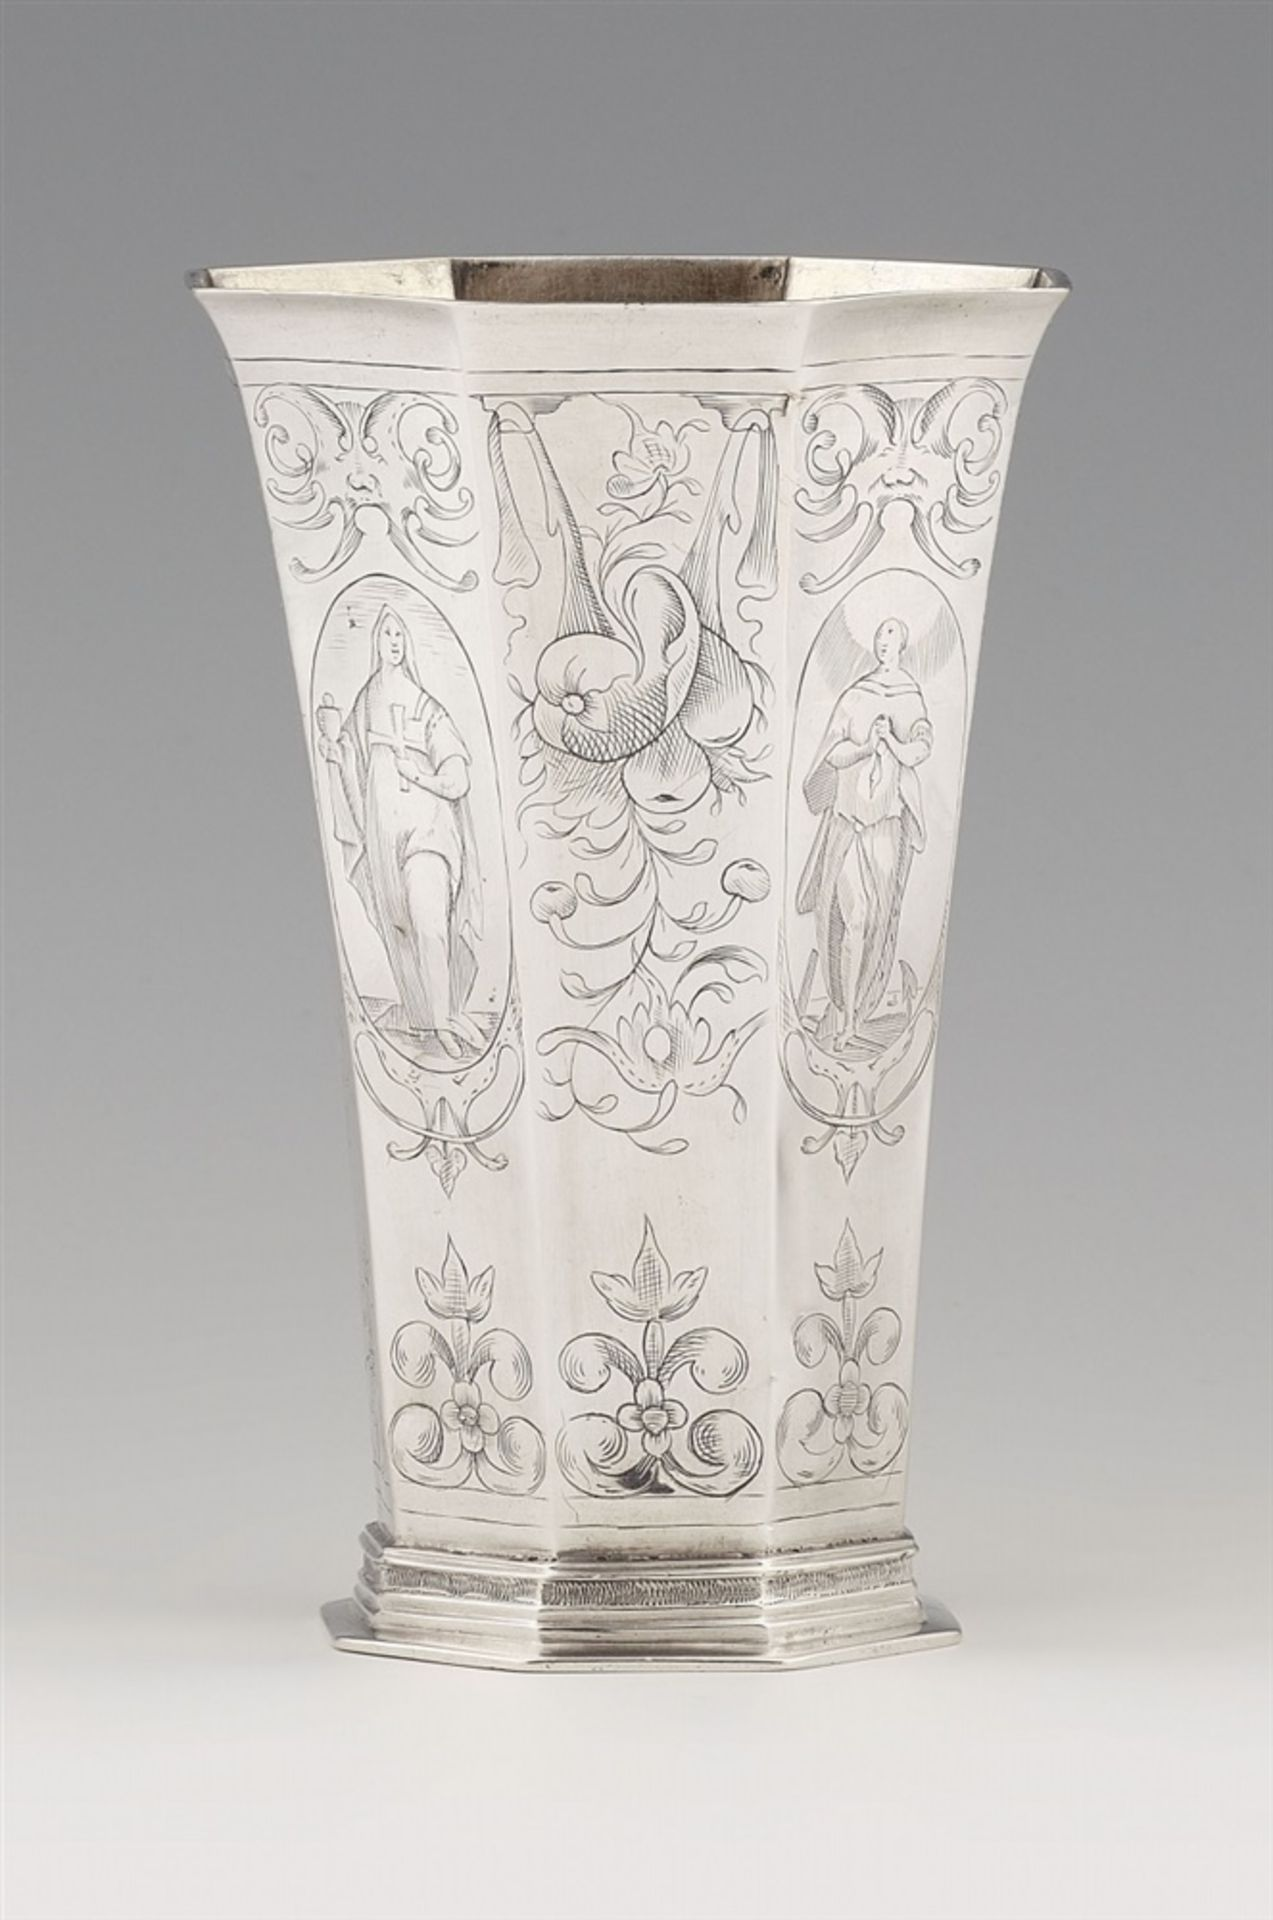 Los 750 - A large Hamburg silver beakerSilver. Tapering beaker of octagonal section decorated throughout